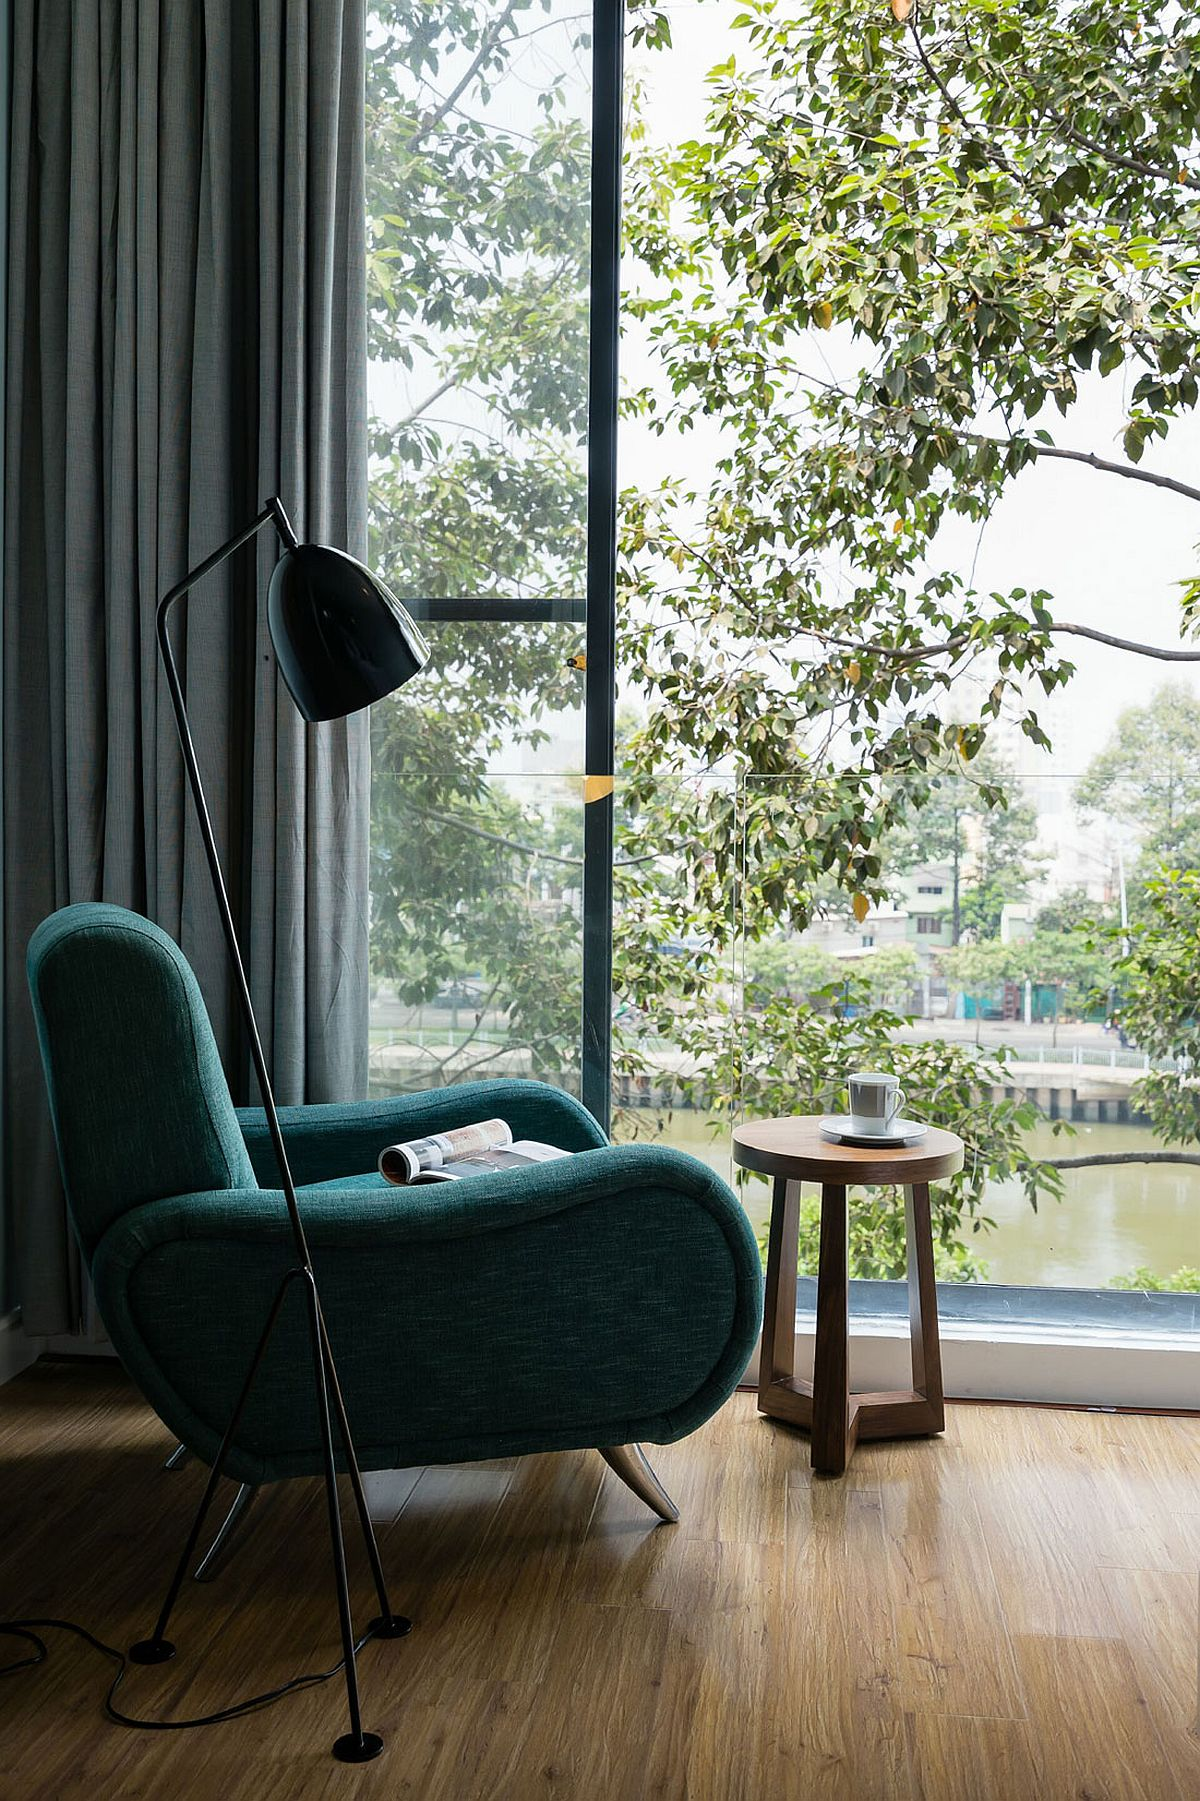 Simple reading nook with floor lamp that offers a view of the canal and green preserve around it